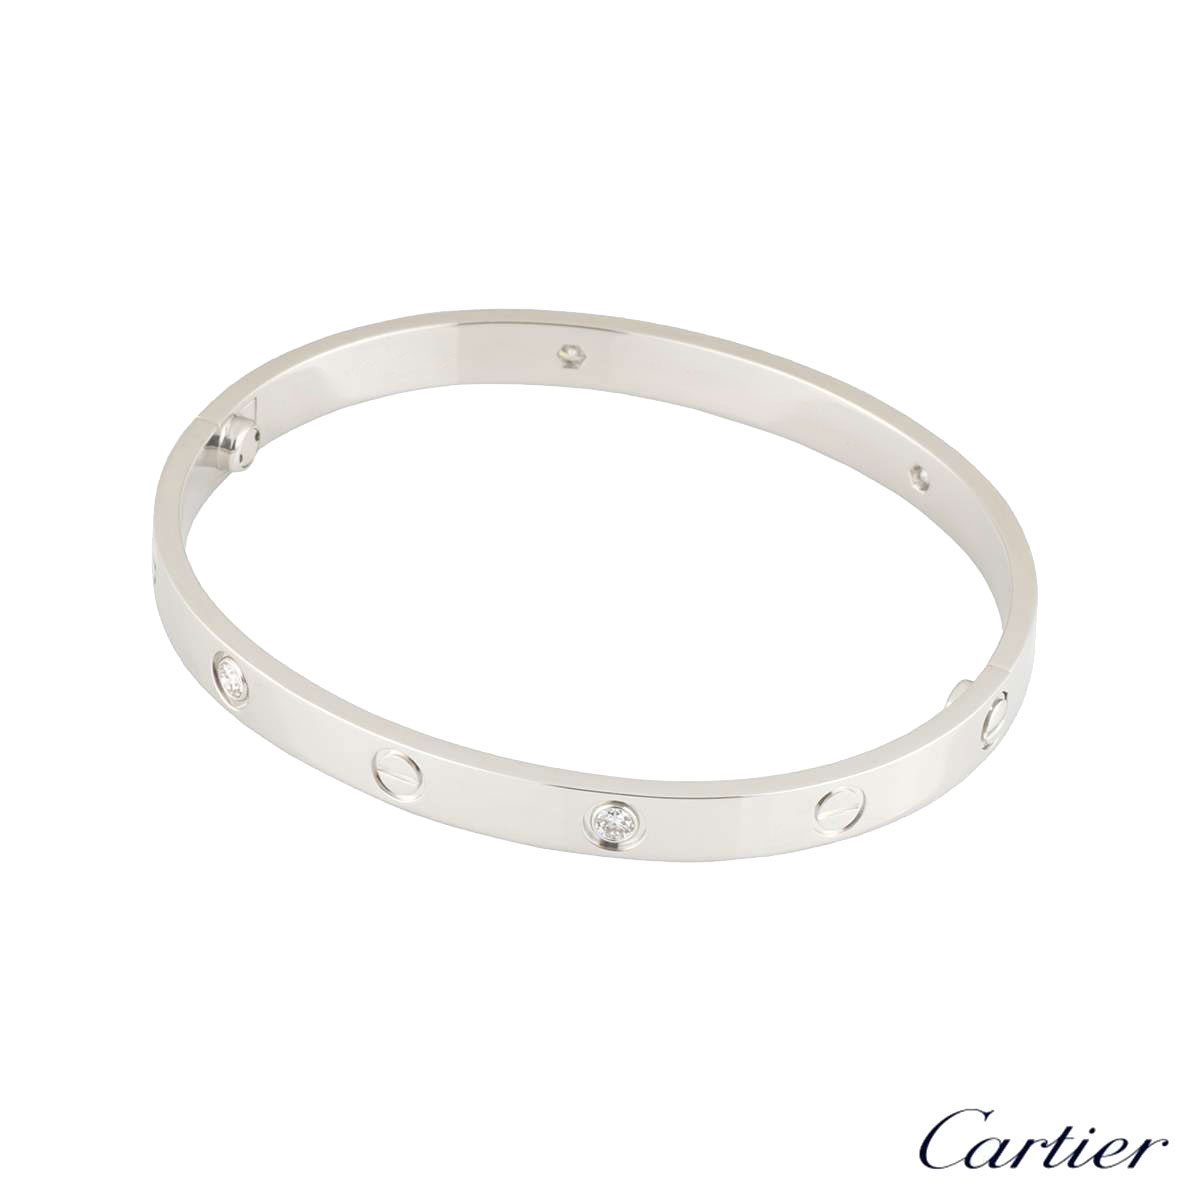 Cartier White Gold Half Diamond Love Bracelet Size 17 B6035817